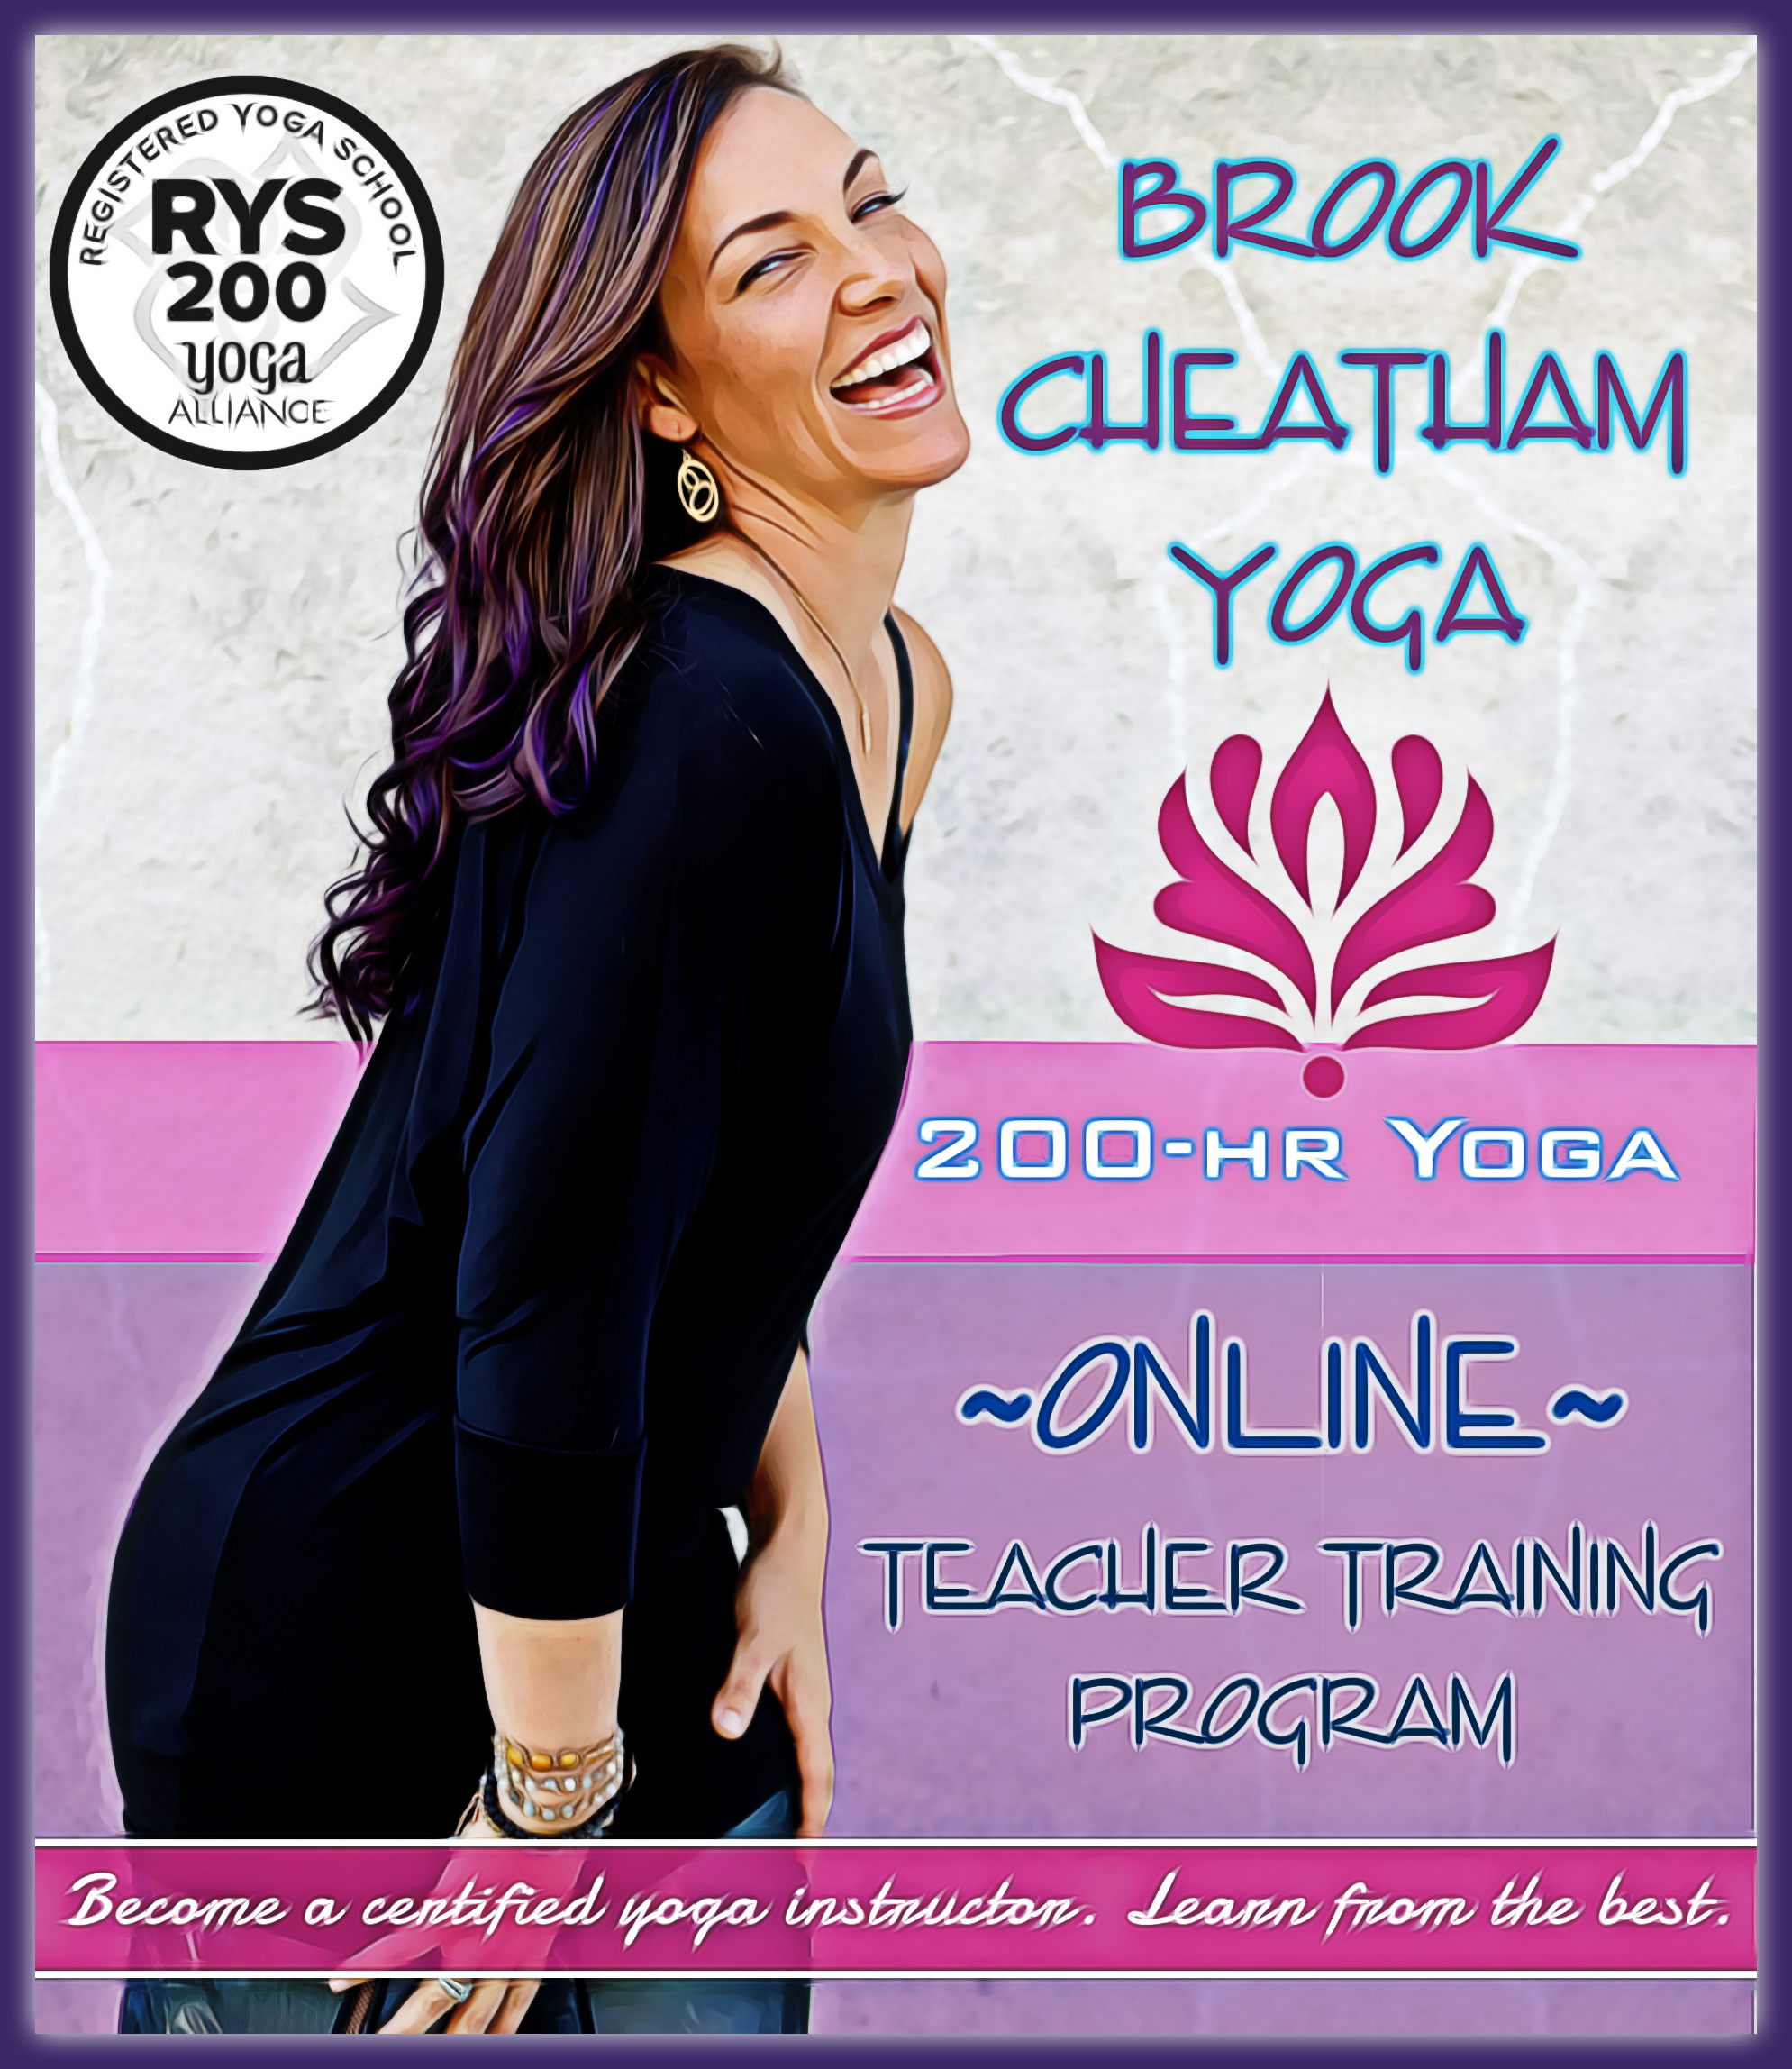 Brook Cheatham Yoga Teacher training